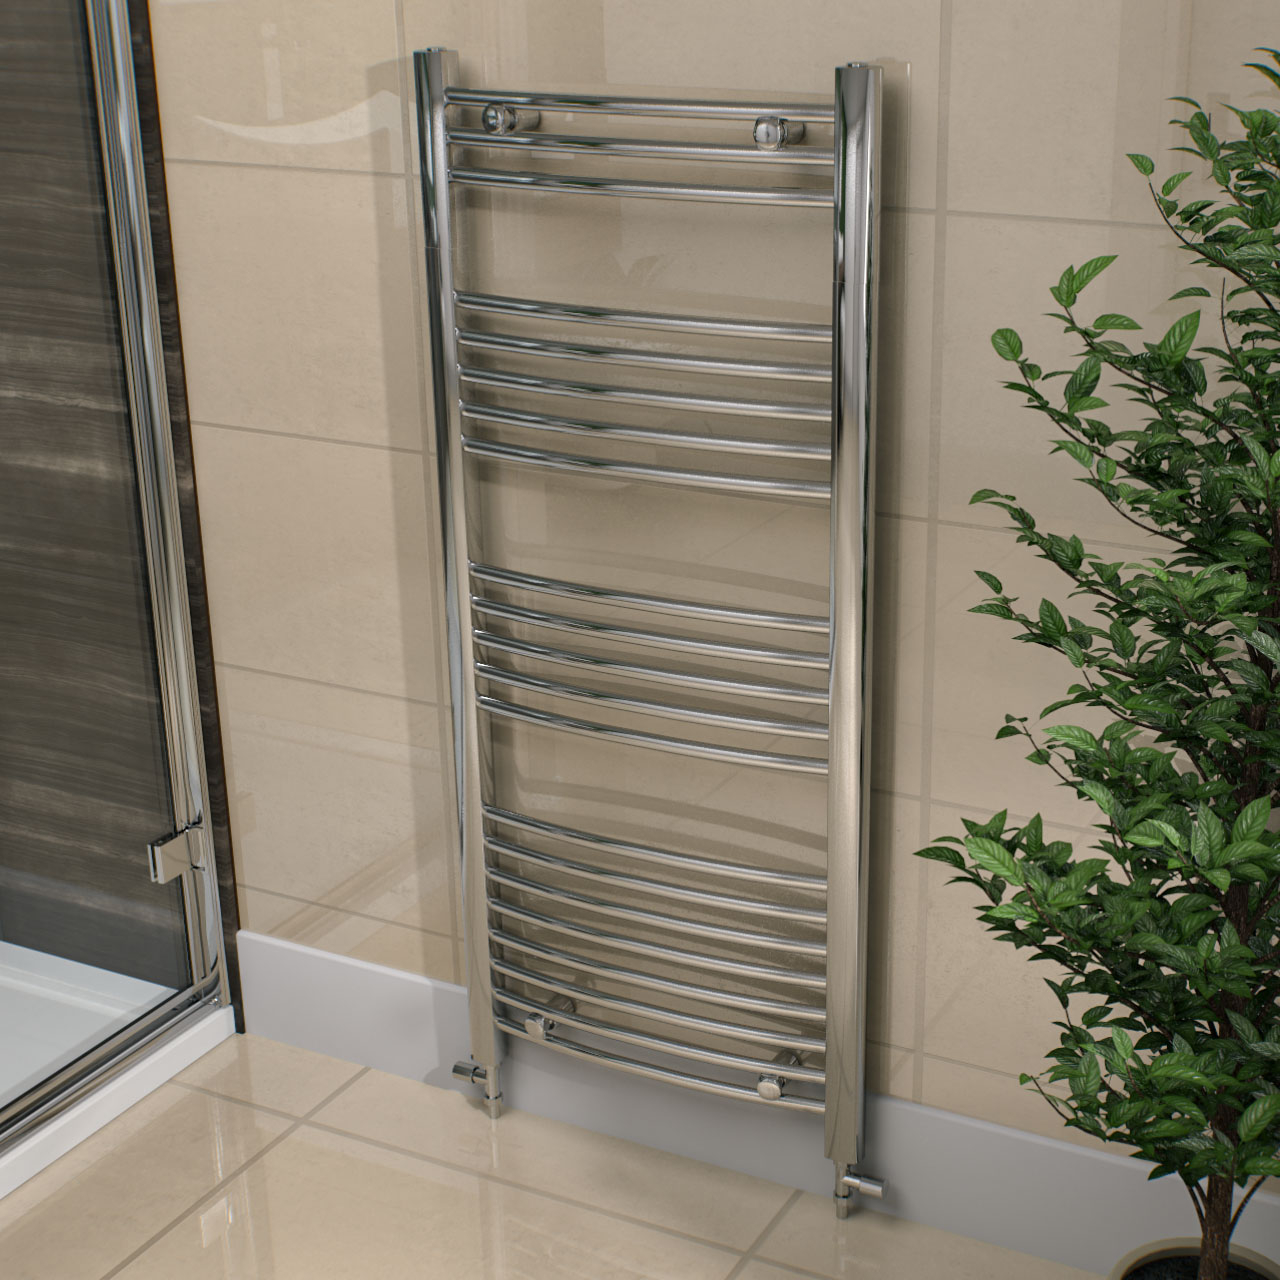 Marco 1150 x 600 Curved Chrome Heated Towel Rail